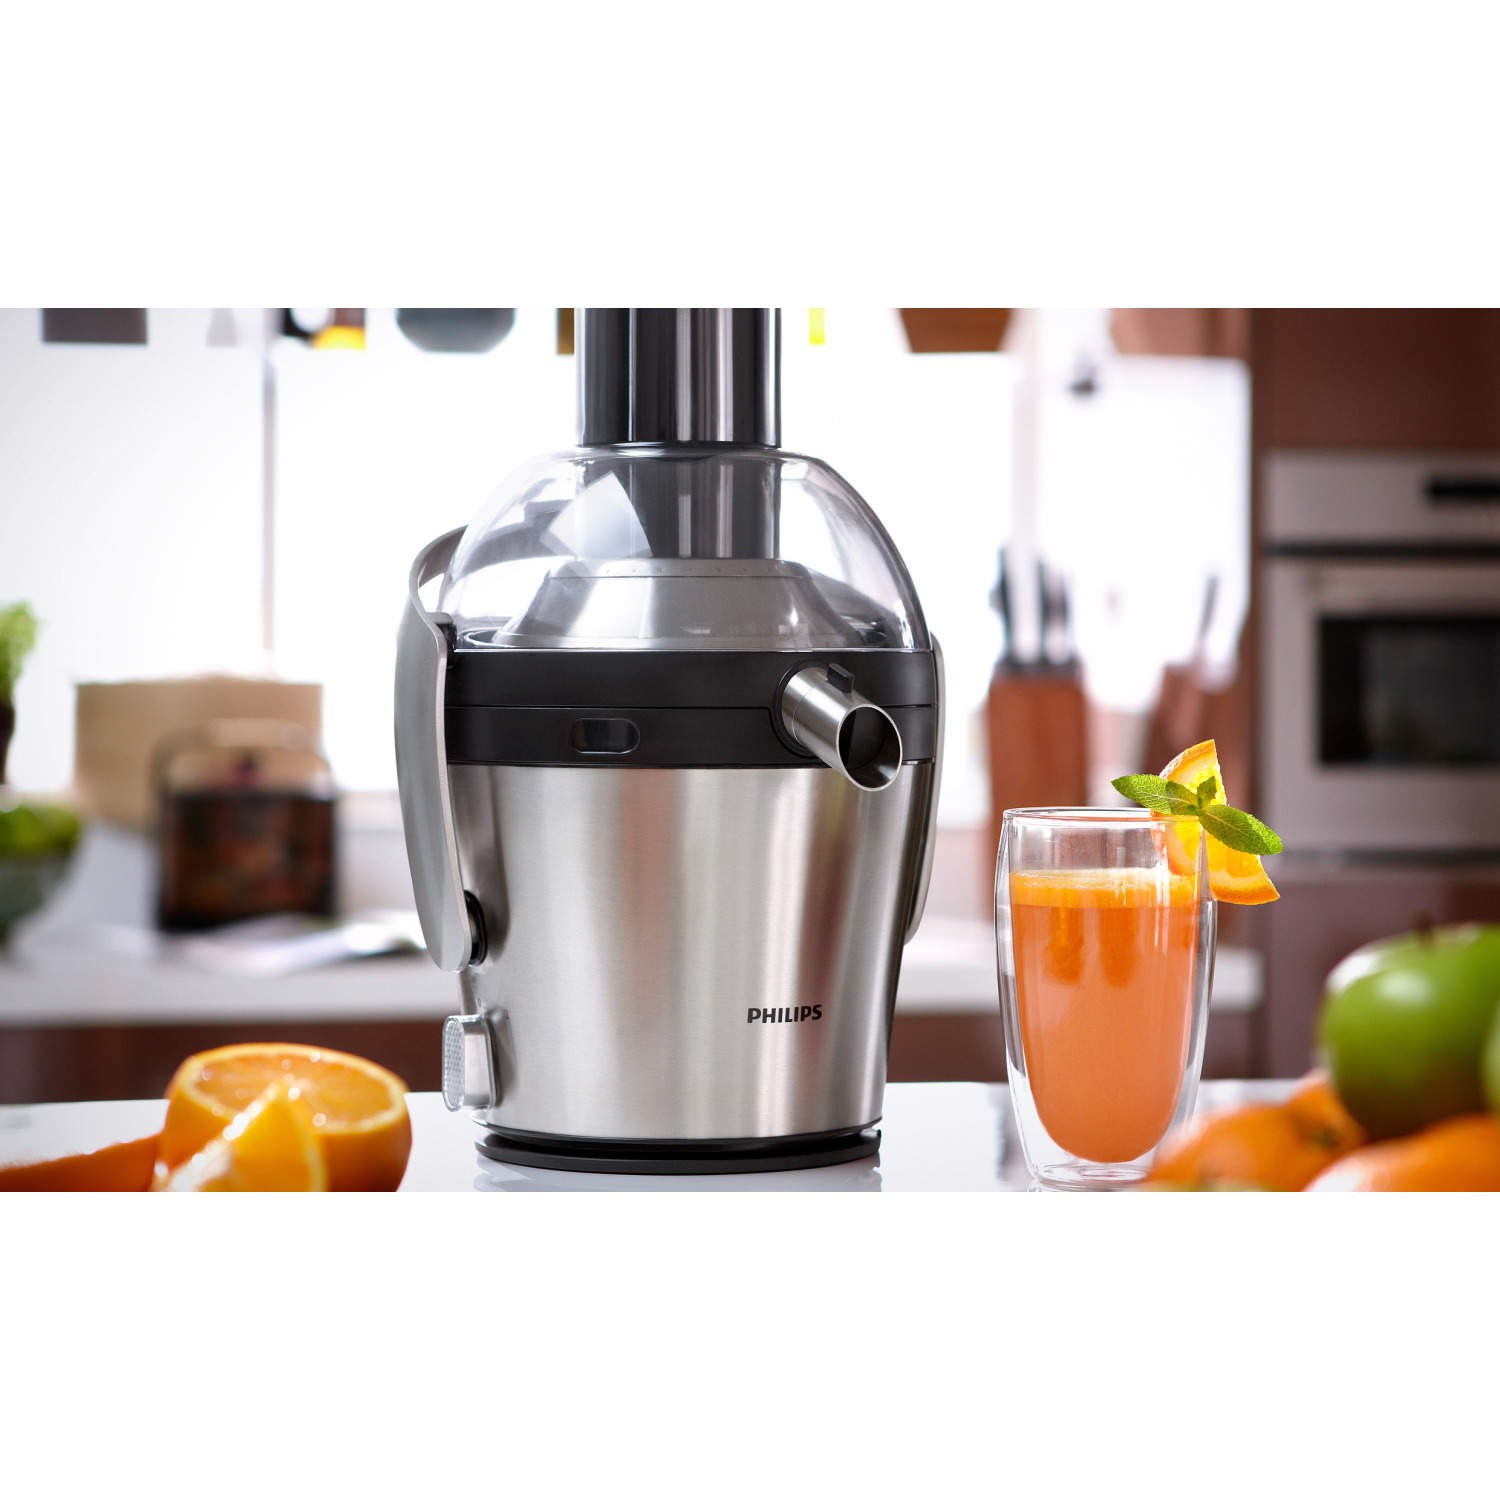 Avance Collection Juicer 800W Stainless